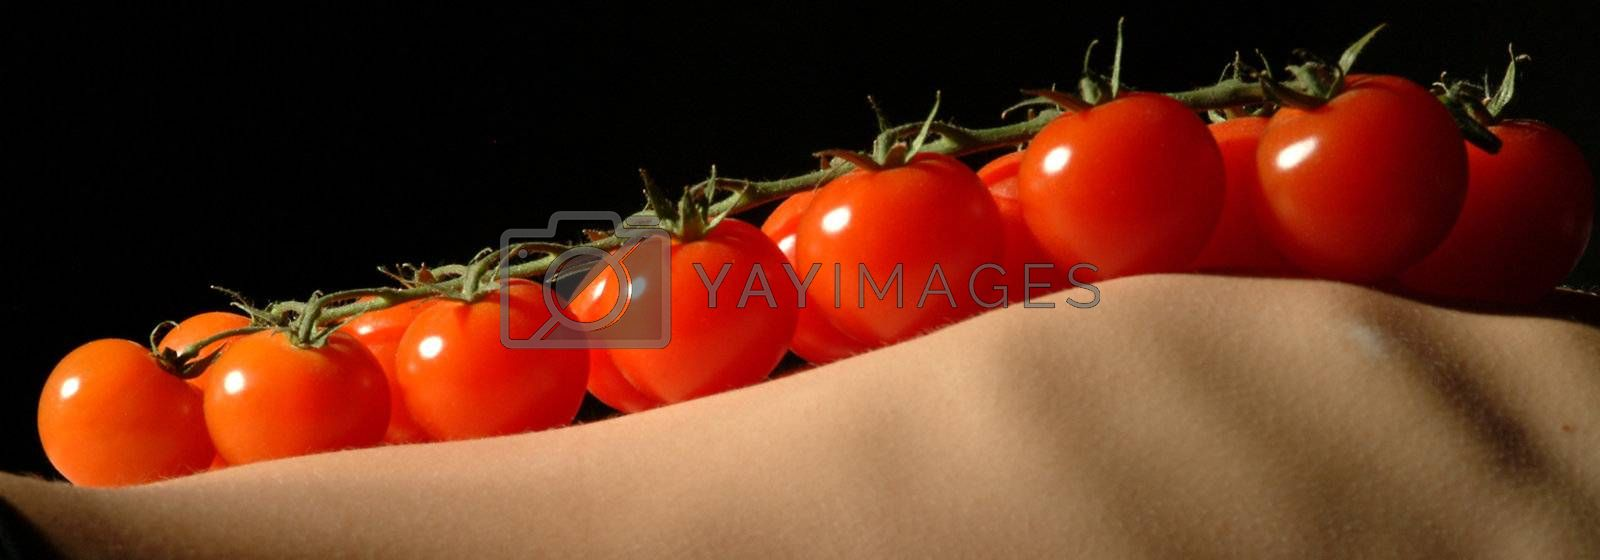 panicle tomatoes on ribs by fotofritz